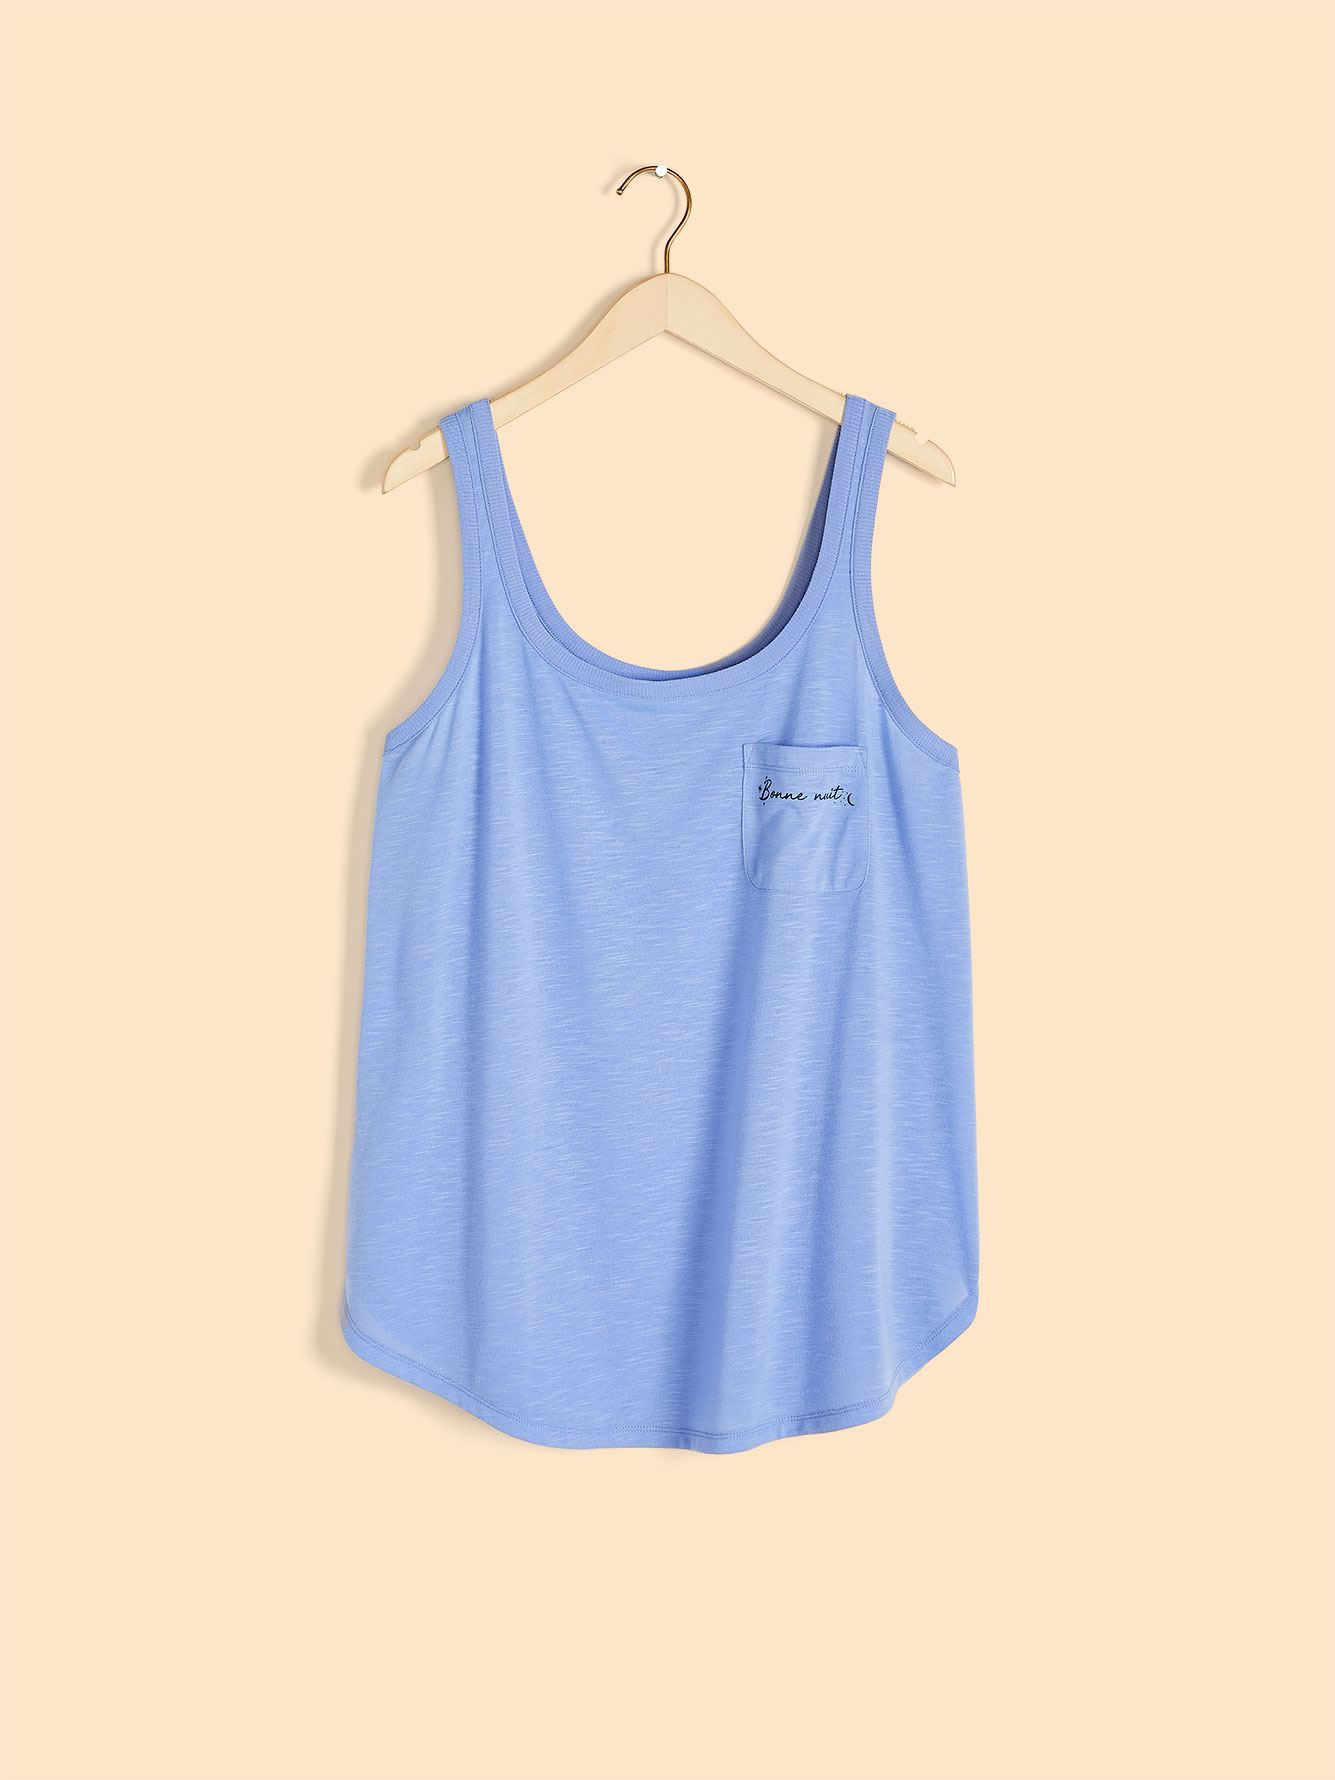 Pajama Tank Top with Pocket Print - Addition Elle